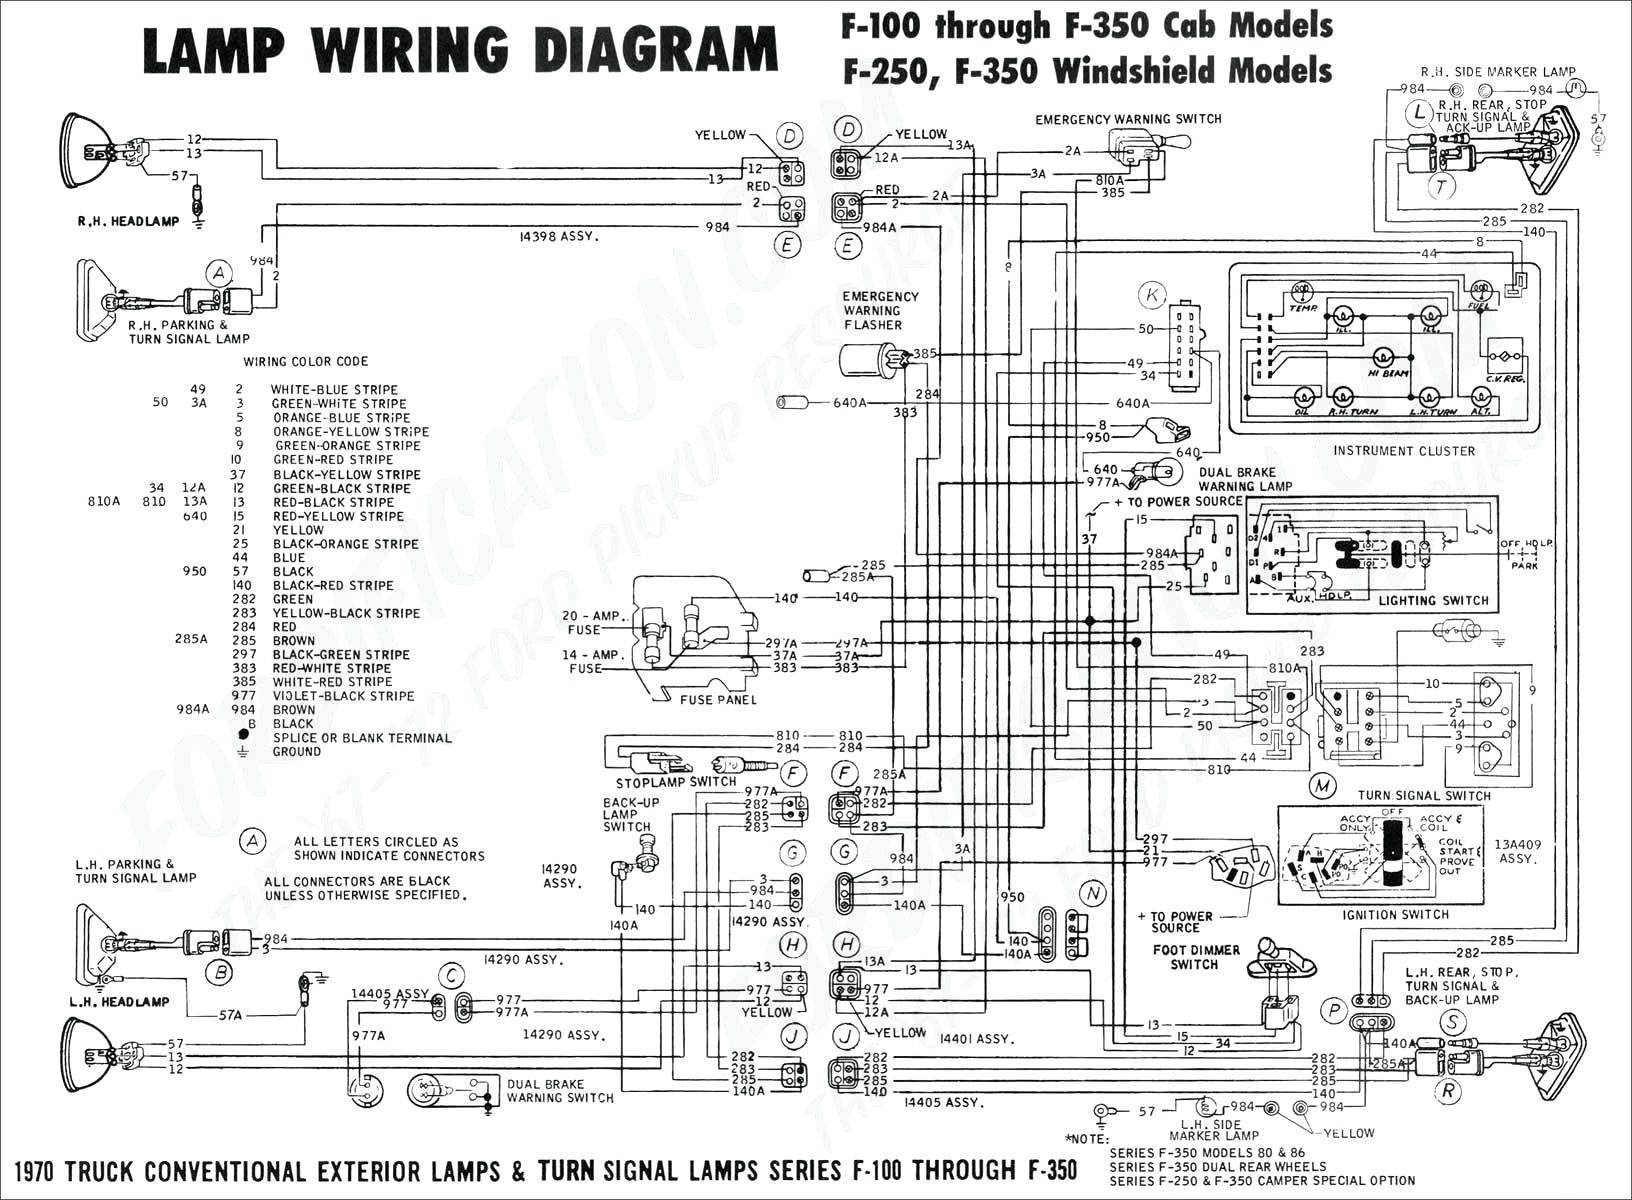 wiring diagram honda accord 2003 furthermore honda accord wiring 2003 Honda Accord Wiring Diagram